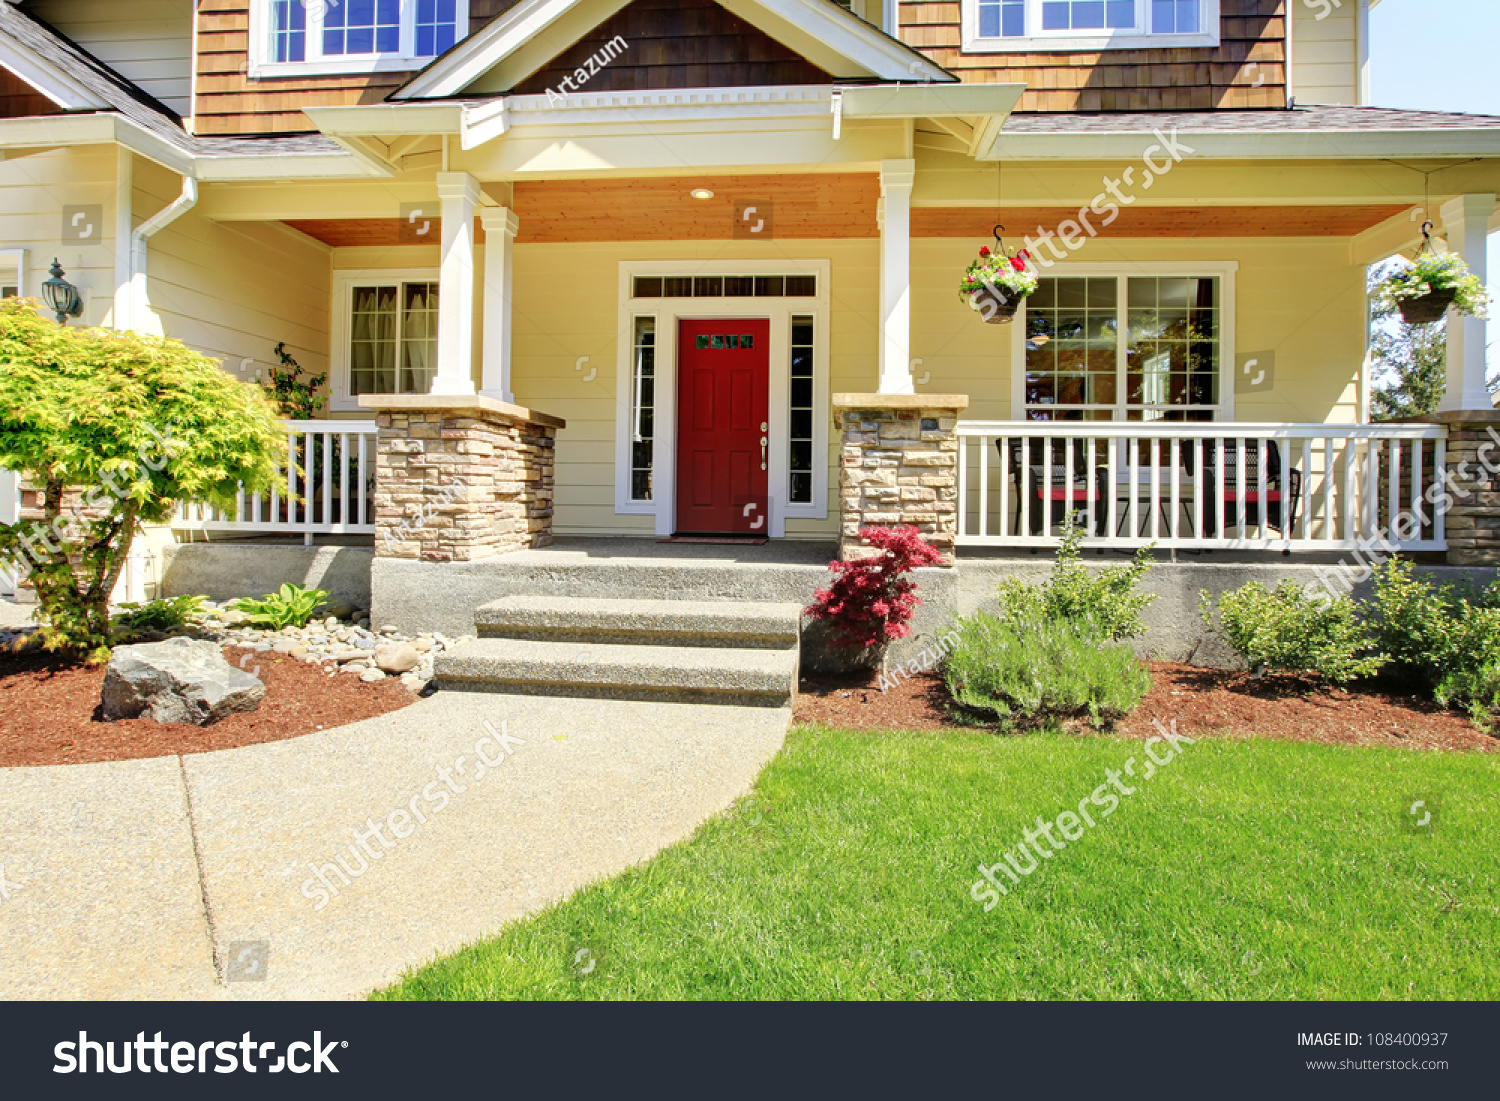 front porch american house red door stock photo 108400937